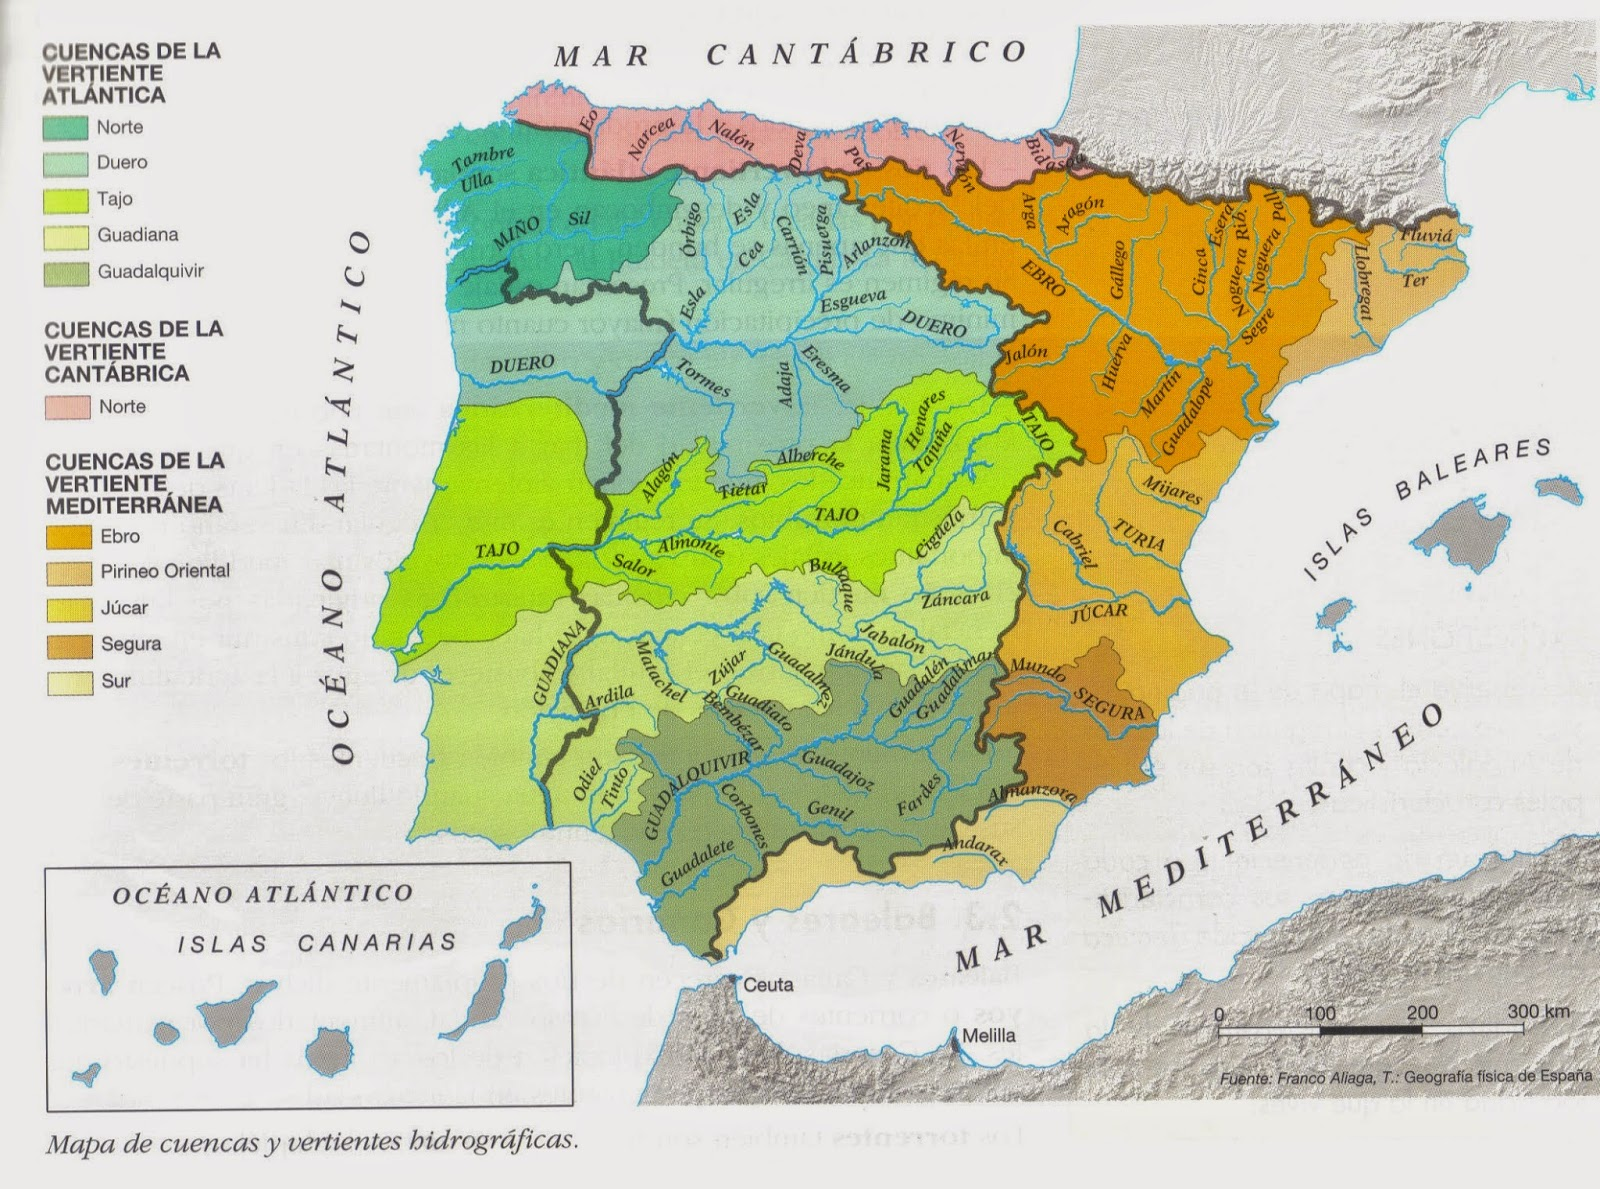 Discovering the world physical geography of spain we have also started learning about the most important rivers of our country you can practice in this interactive maps rivers of spain whats the name gumiabroncs Images